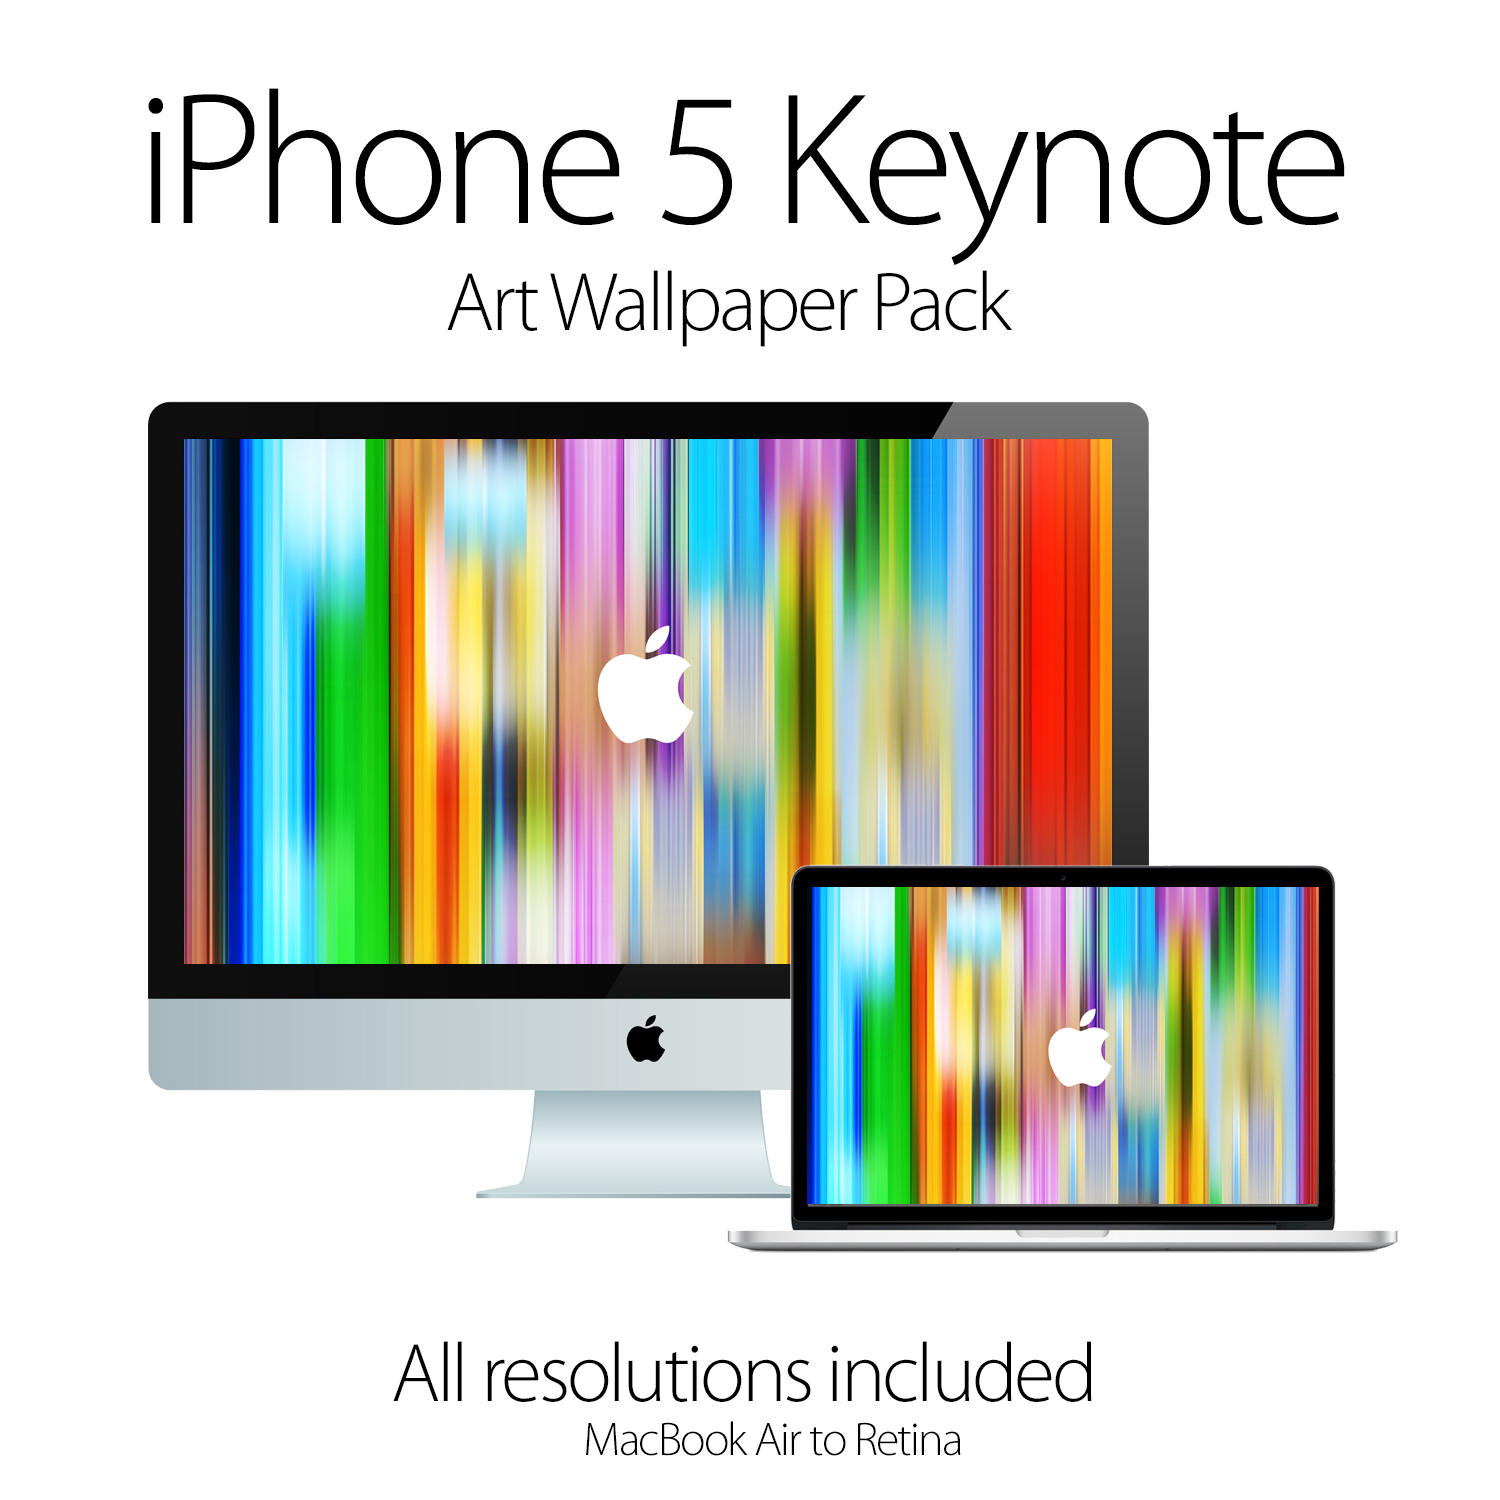 iPhone 5 Keynote Art Wallpaper by art-e-fact